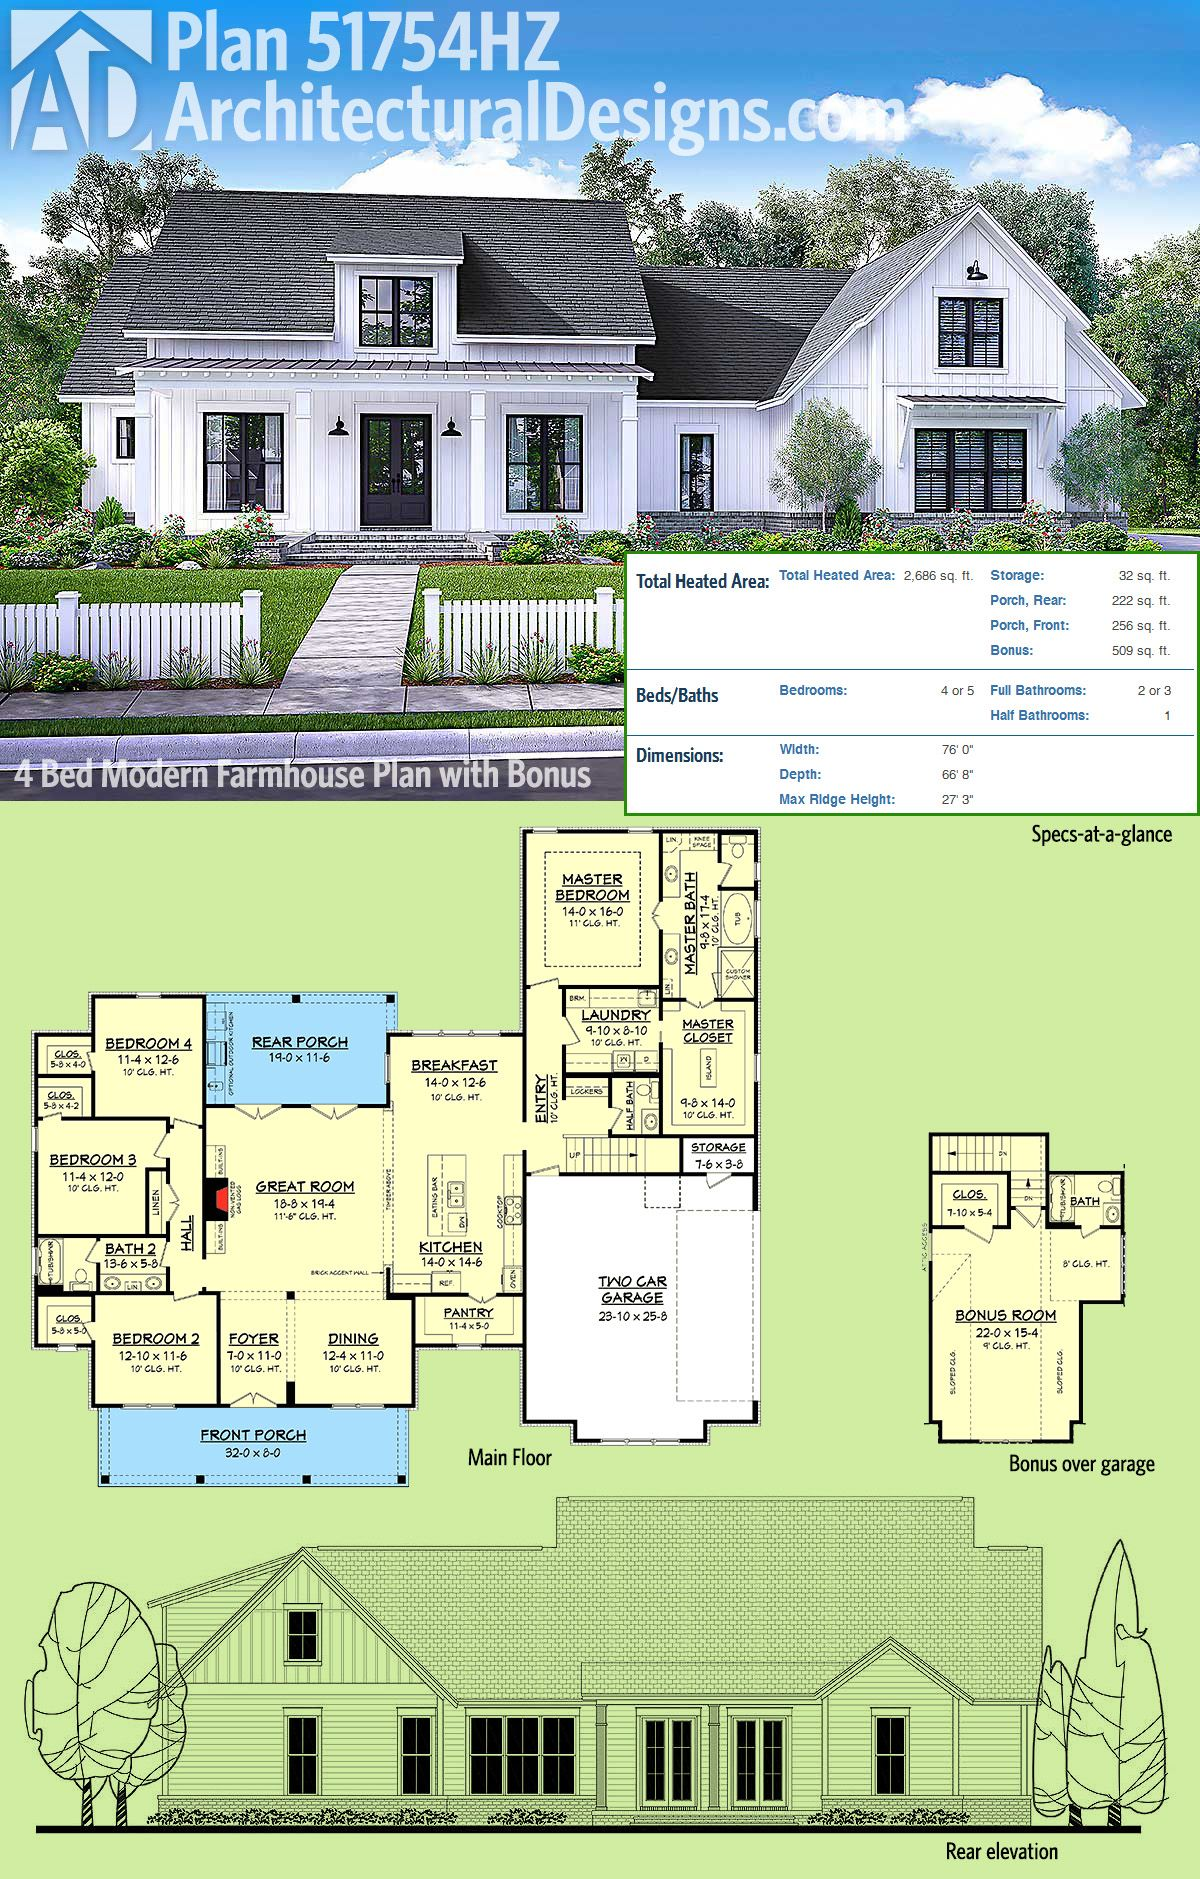 Exceptional Architectural Designs Modern Farmhouse Plan 51754HZ Gives You Over 2,600  Square Feet Of Living Space Plus A Bonus Room Over The Garage Giving You A  Great ... Design Ideas